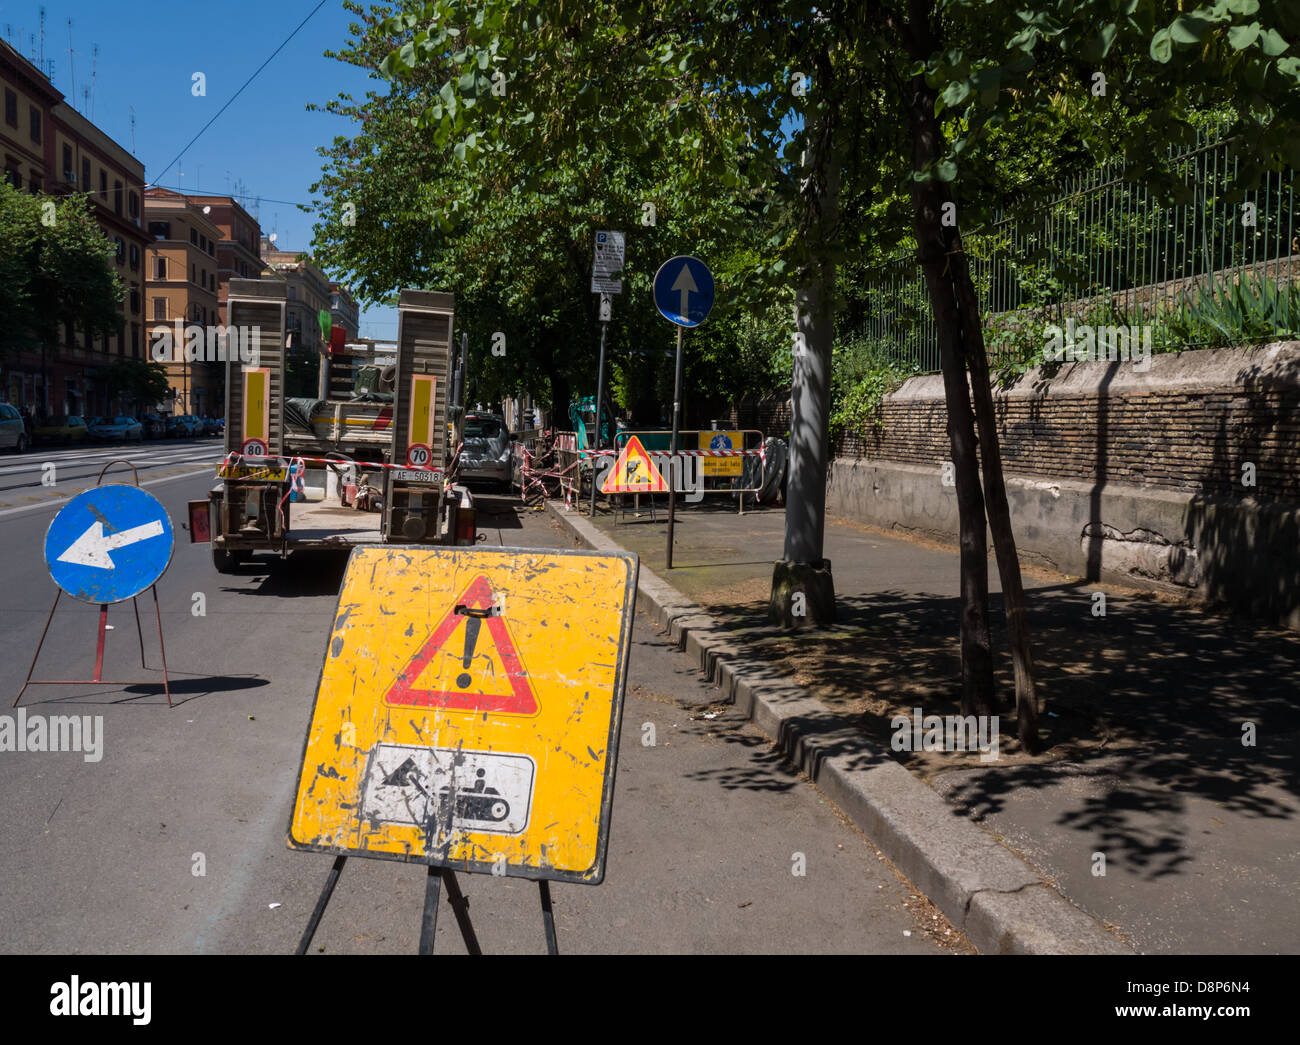 signs of a work in progress on a tree-lined street - Stock Image